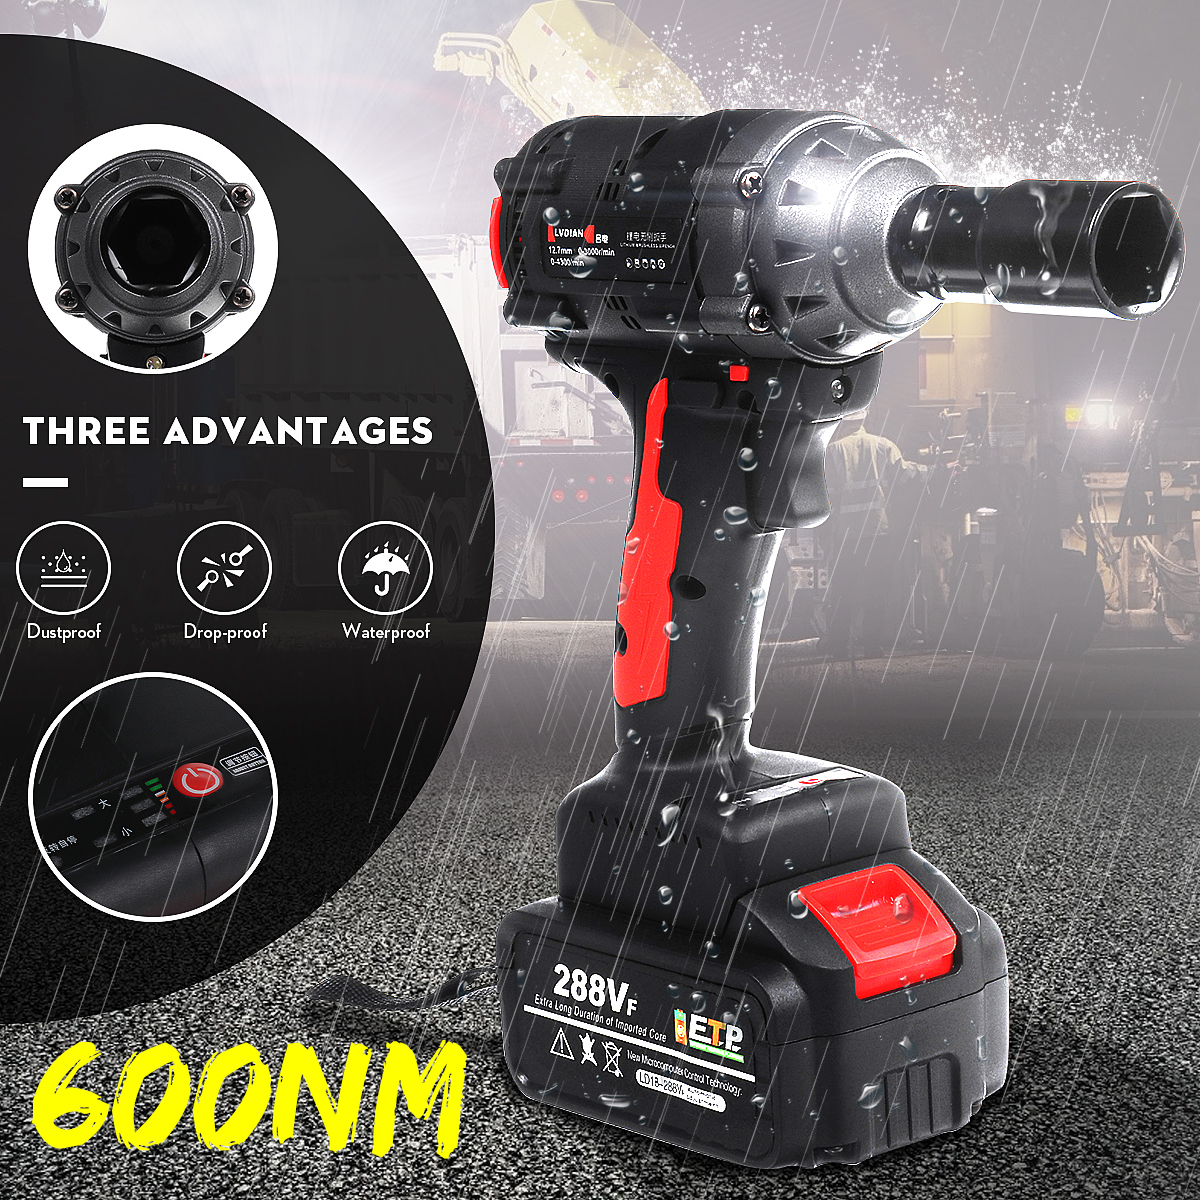 600Nm High Torque 288VF 19800mAh Waterproof Brushless Wrench LED Light Rechargeable Cordless Electric Impact Drill Screwdriver